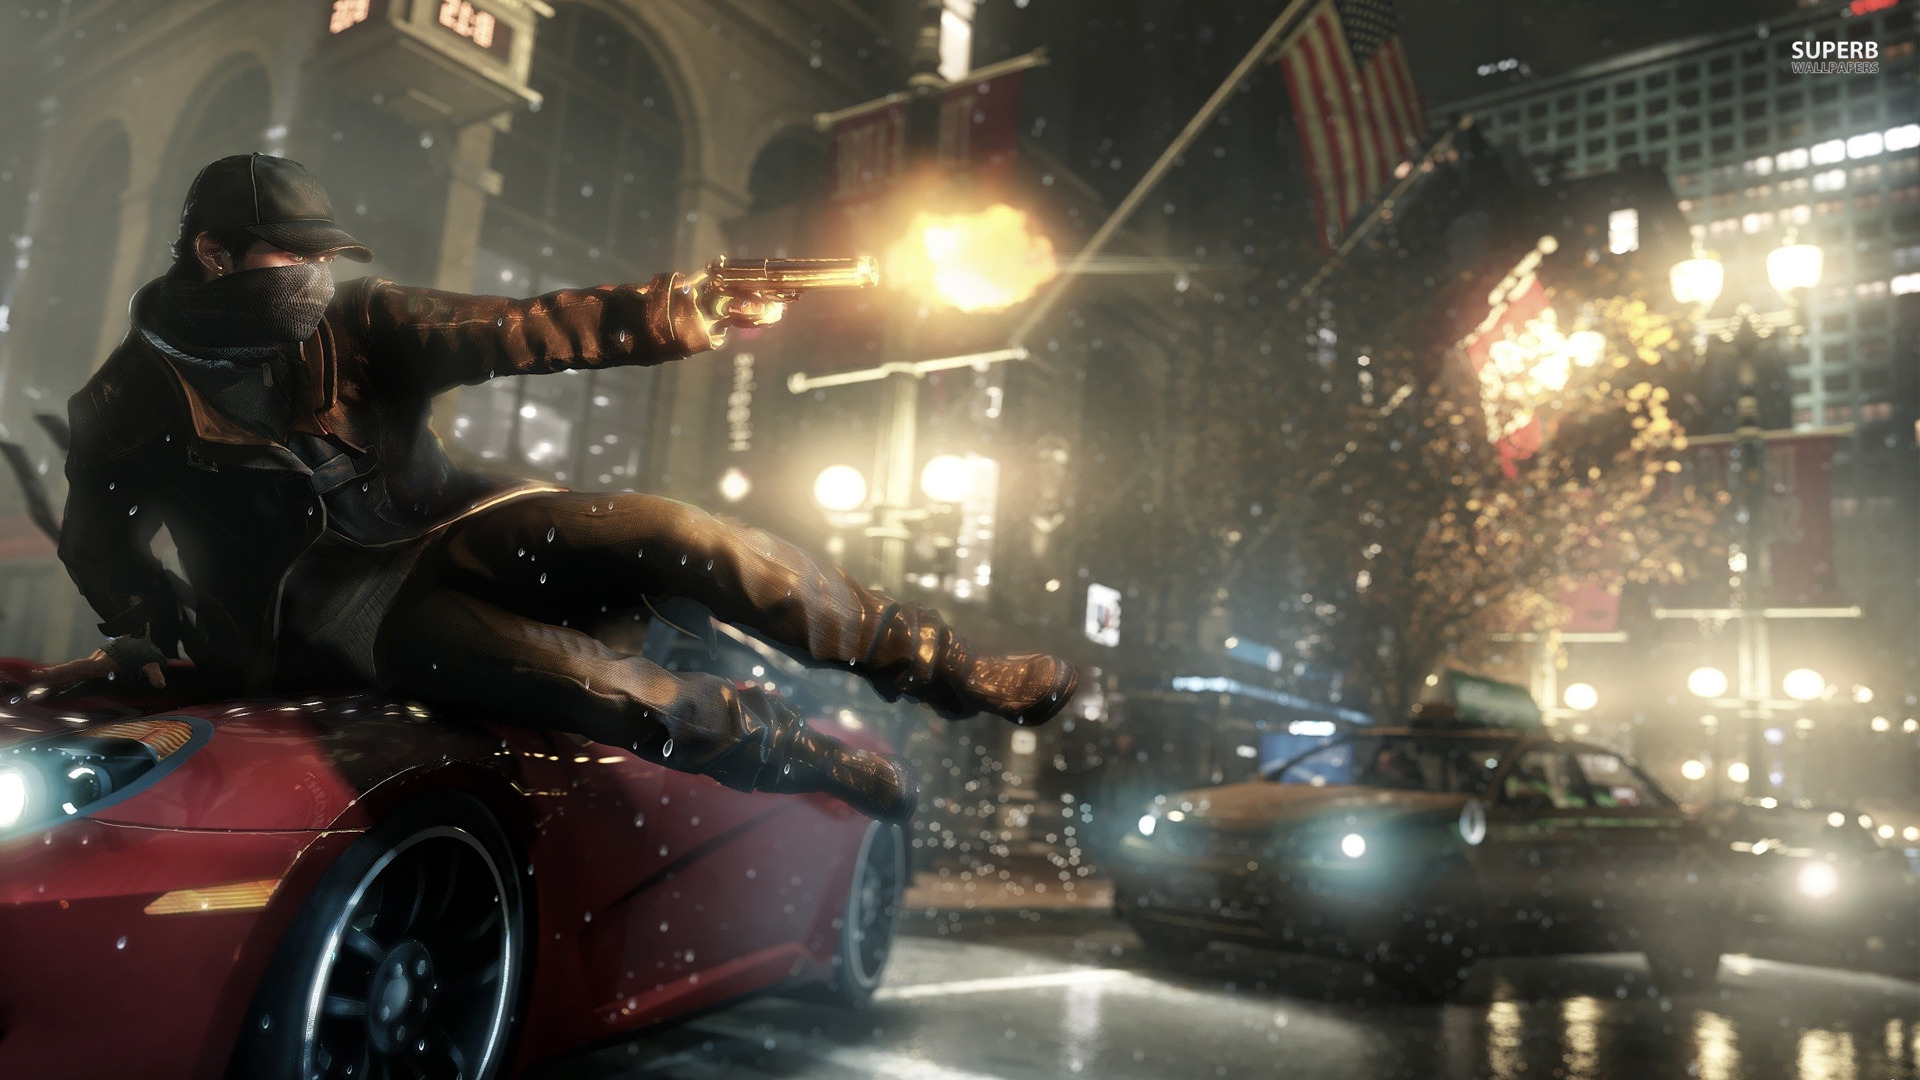 Watch Dogs Desktop Wallpaper Next Watch Dogs Desktop Wallpaper